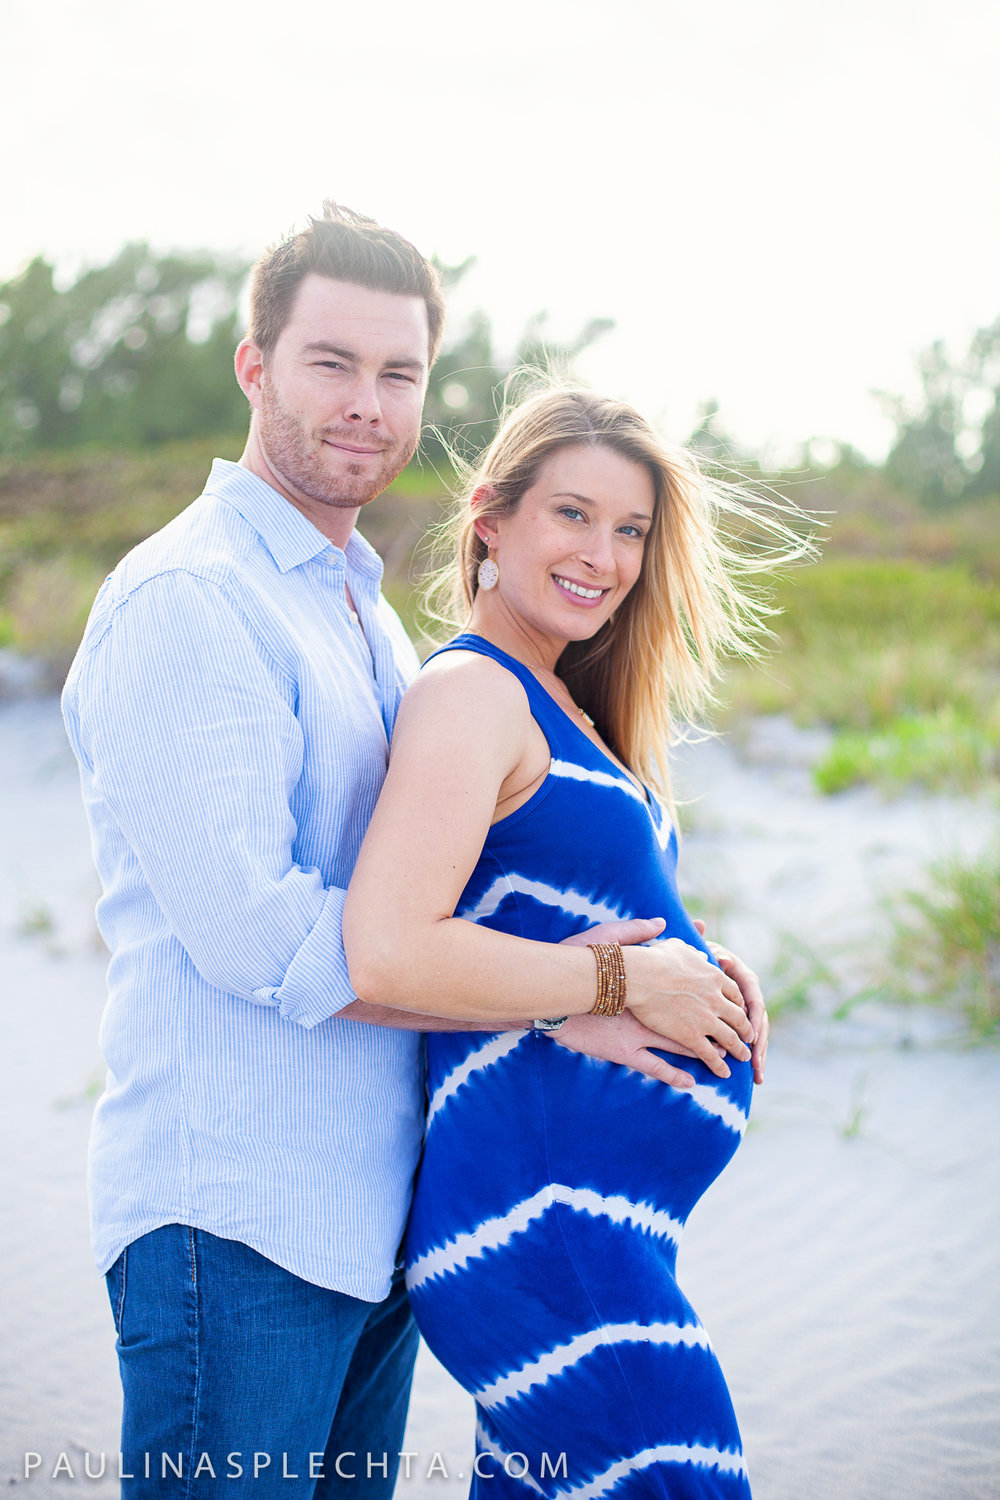 boca-raton-maternity-photographer-pregnancy-photos-shoot-ft-lauderdale-south-florida-gown-dress-newborn-west-palm-beach-delray-5.jpg